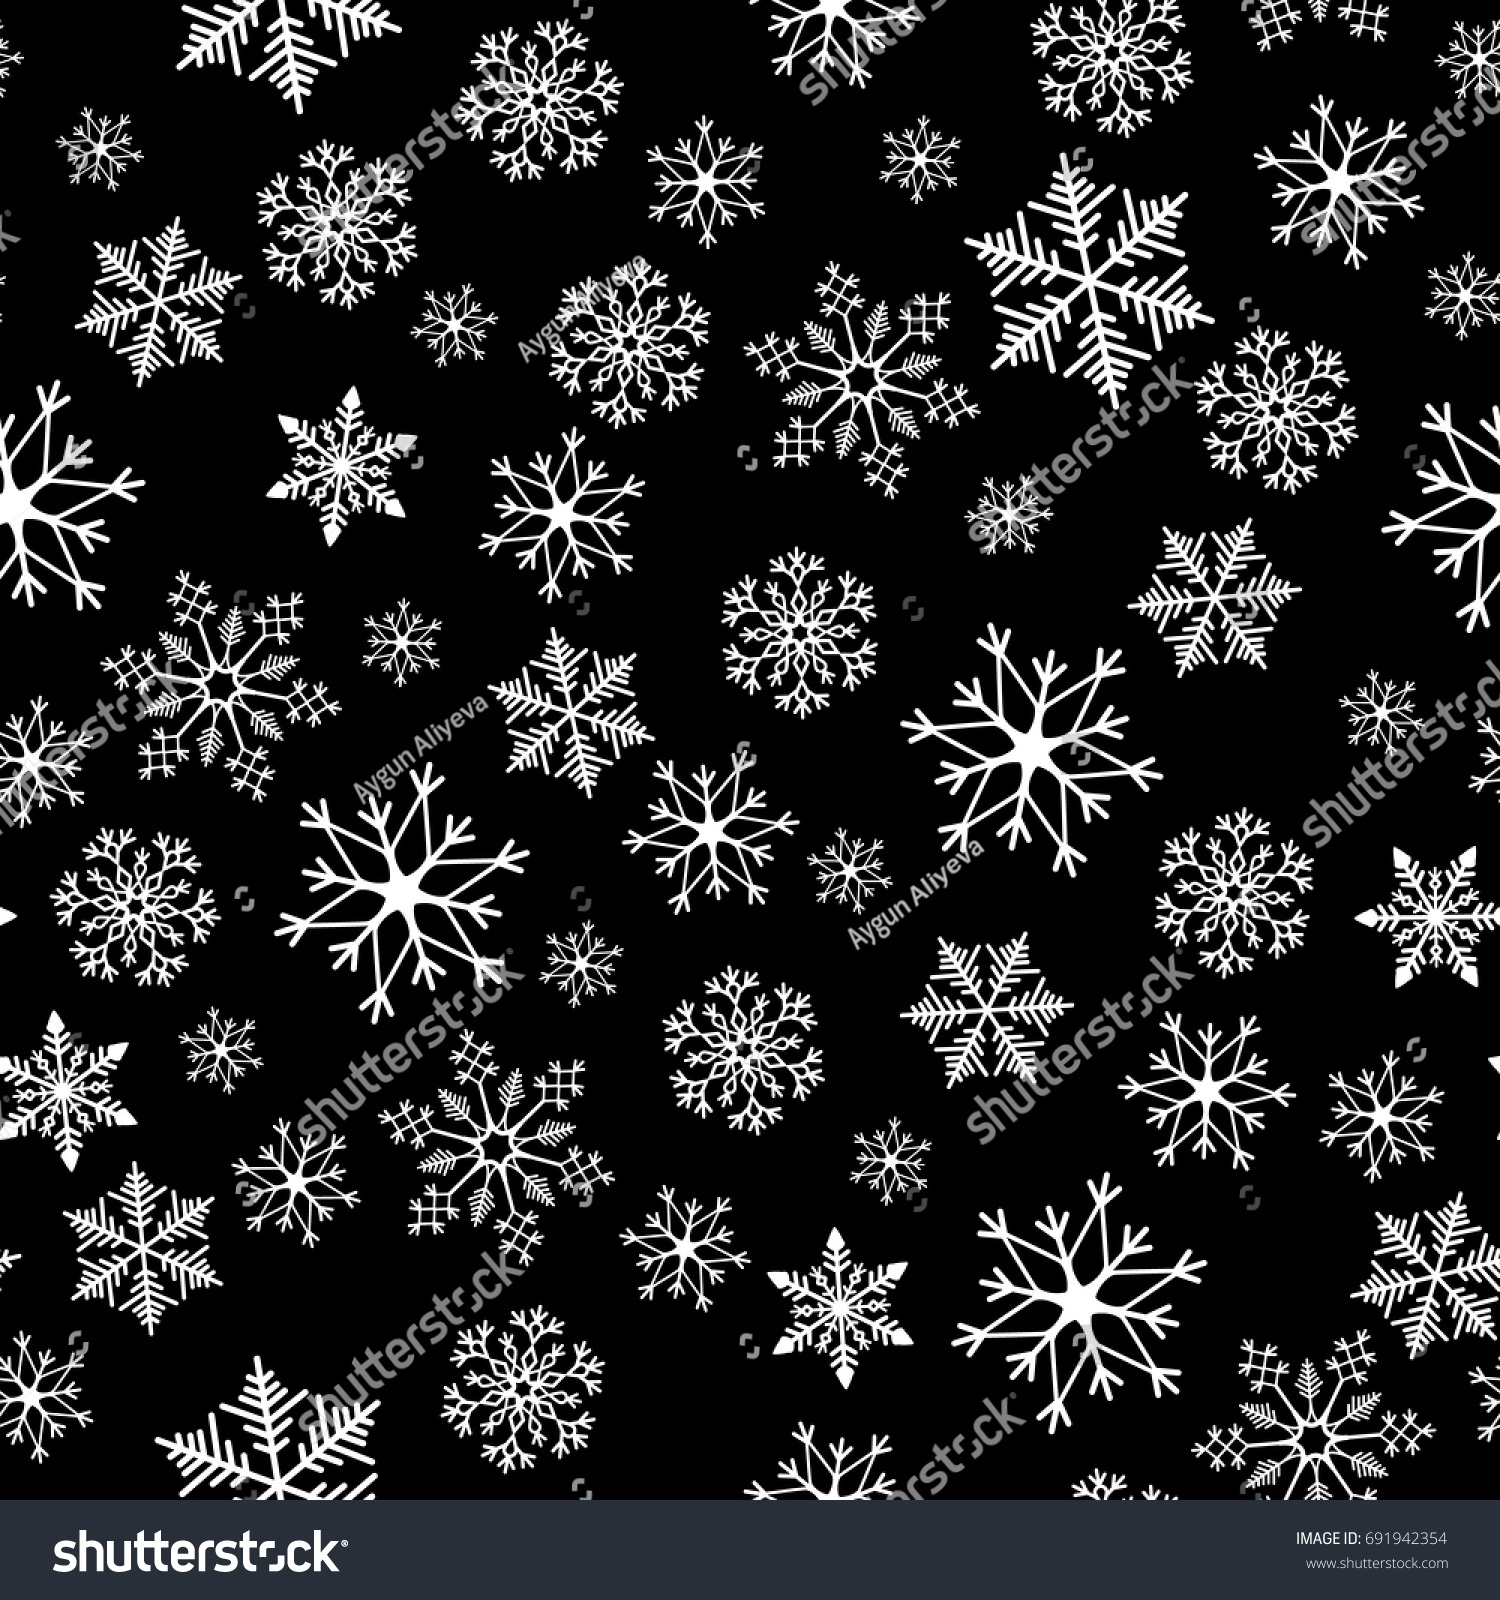 Snowflake Simple Seamless Pattern Abstract Wallpaper Stock Vector